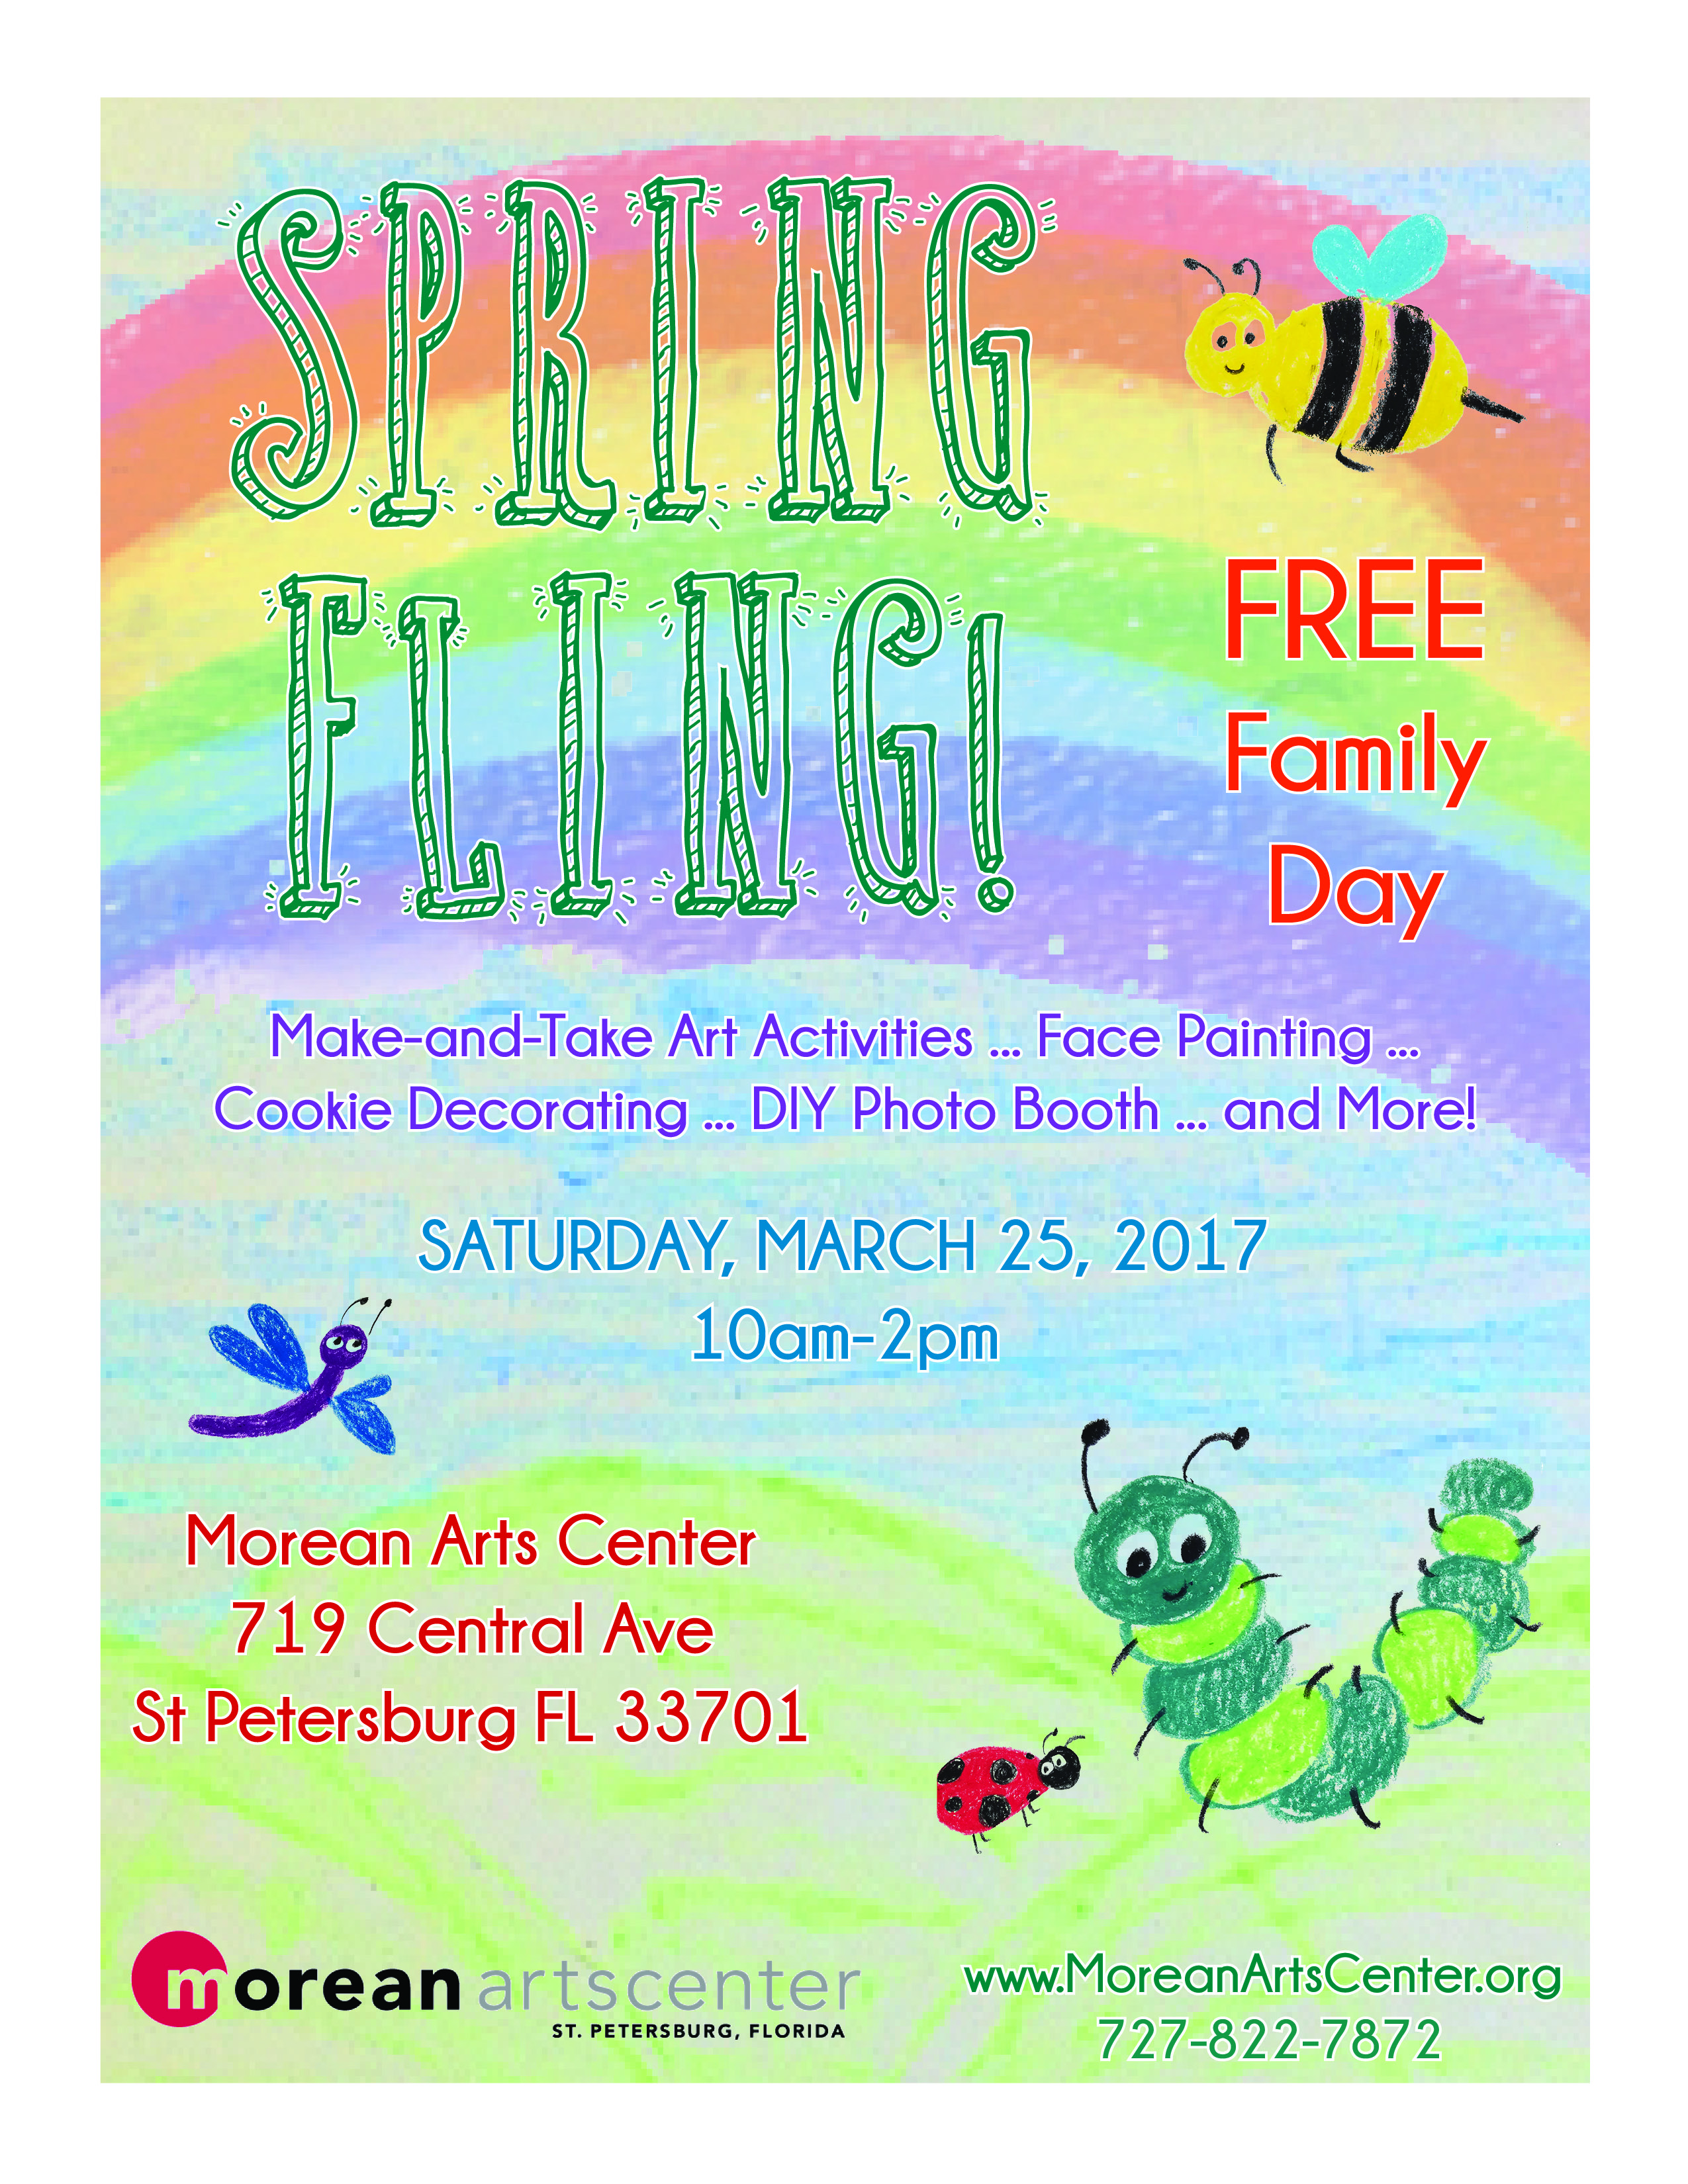 morean arts center spring family day 2017